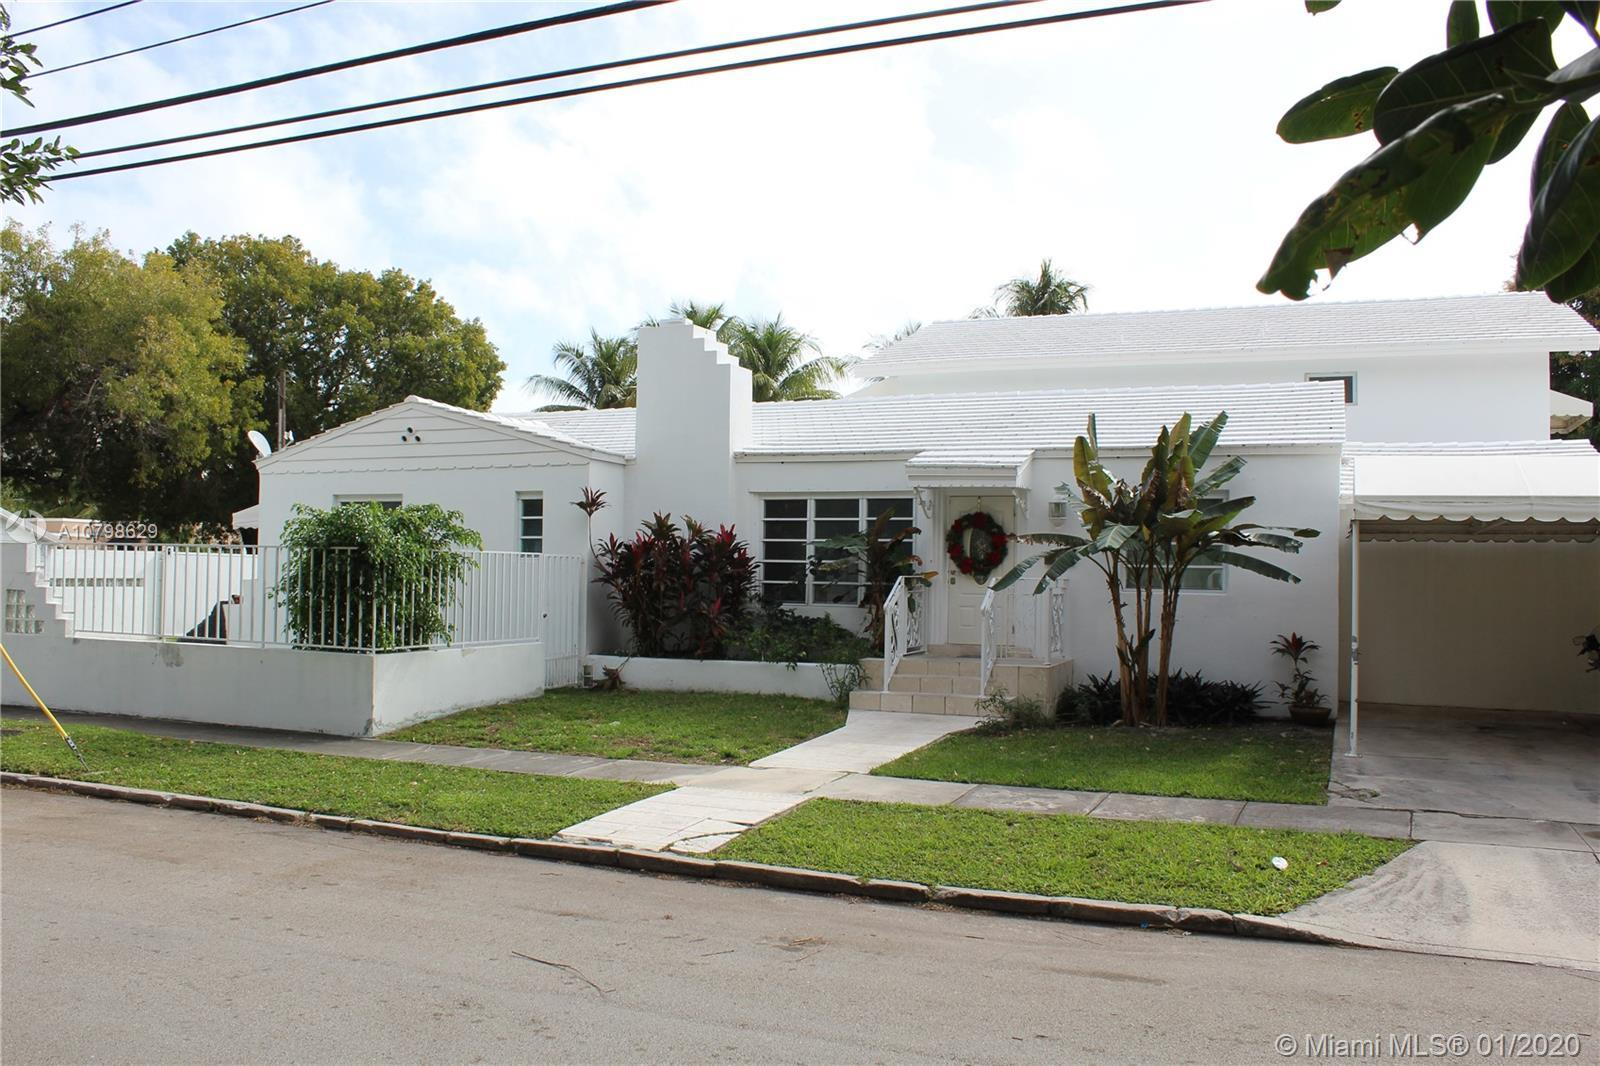 One Of A Kind Opportunity In Highly Sought & Historic Neighborhood Of The Roads. Remodeled With +/- 4000 SF Of Living Area & A 11,571 SF Oversized Corner Lot  With 6 Bed & 5 Full Baths 2  Minutes From Downtown Miami, Brickell, Key Biscayne, Coconut Grove, Coral Gables, Wynwood & Hospital's.  Property Boast's A Large Spacious Living Area With Large & Open Kitchen With High End Appliances & Custom Cabinetry With Island In The Center Perfect For A Large Family That Love's Entertaining.  In Law Quarter Or Guest Room With Private Kitchen & Bathroom In Second Floor With Open Floorplan & Views Of 8' Deep Pool & Lounge Area. Pool Area Is Open & Spacious With Room For RV & Boat With Plenty Of Room For Additional Parking With 7' Fence Around Perimete